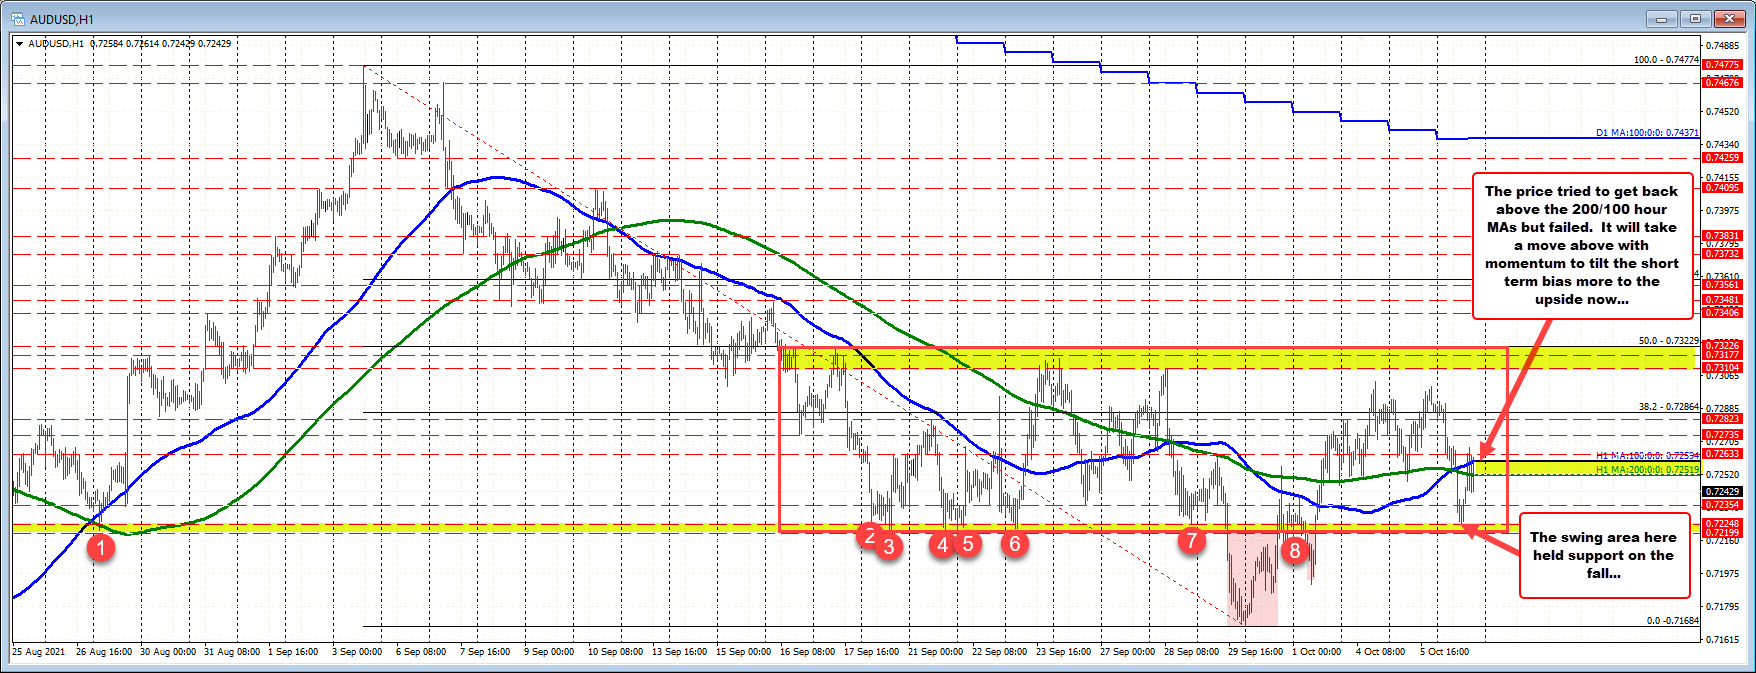 AUDUSD tries to rebound above 100/200 hour MA, but fails.